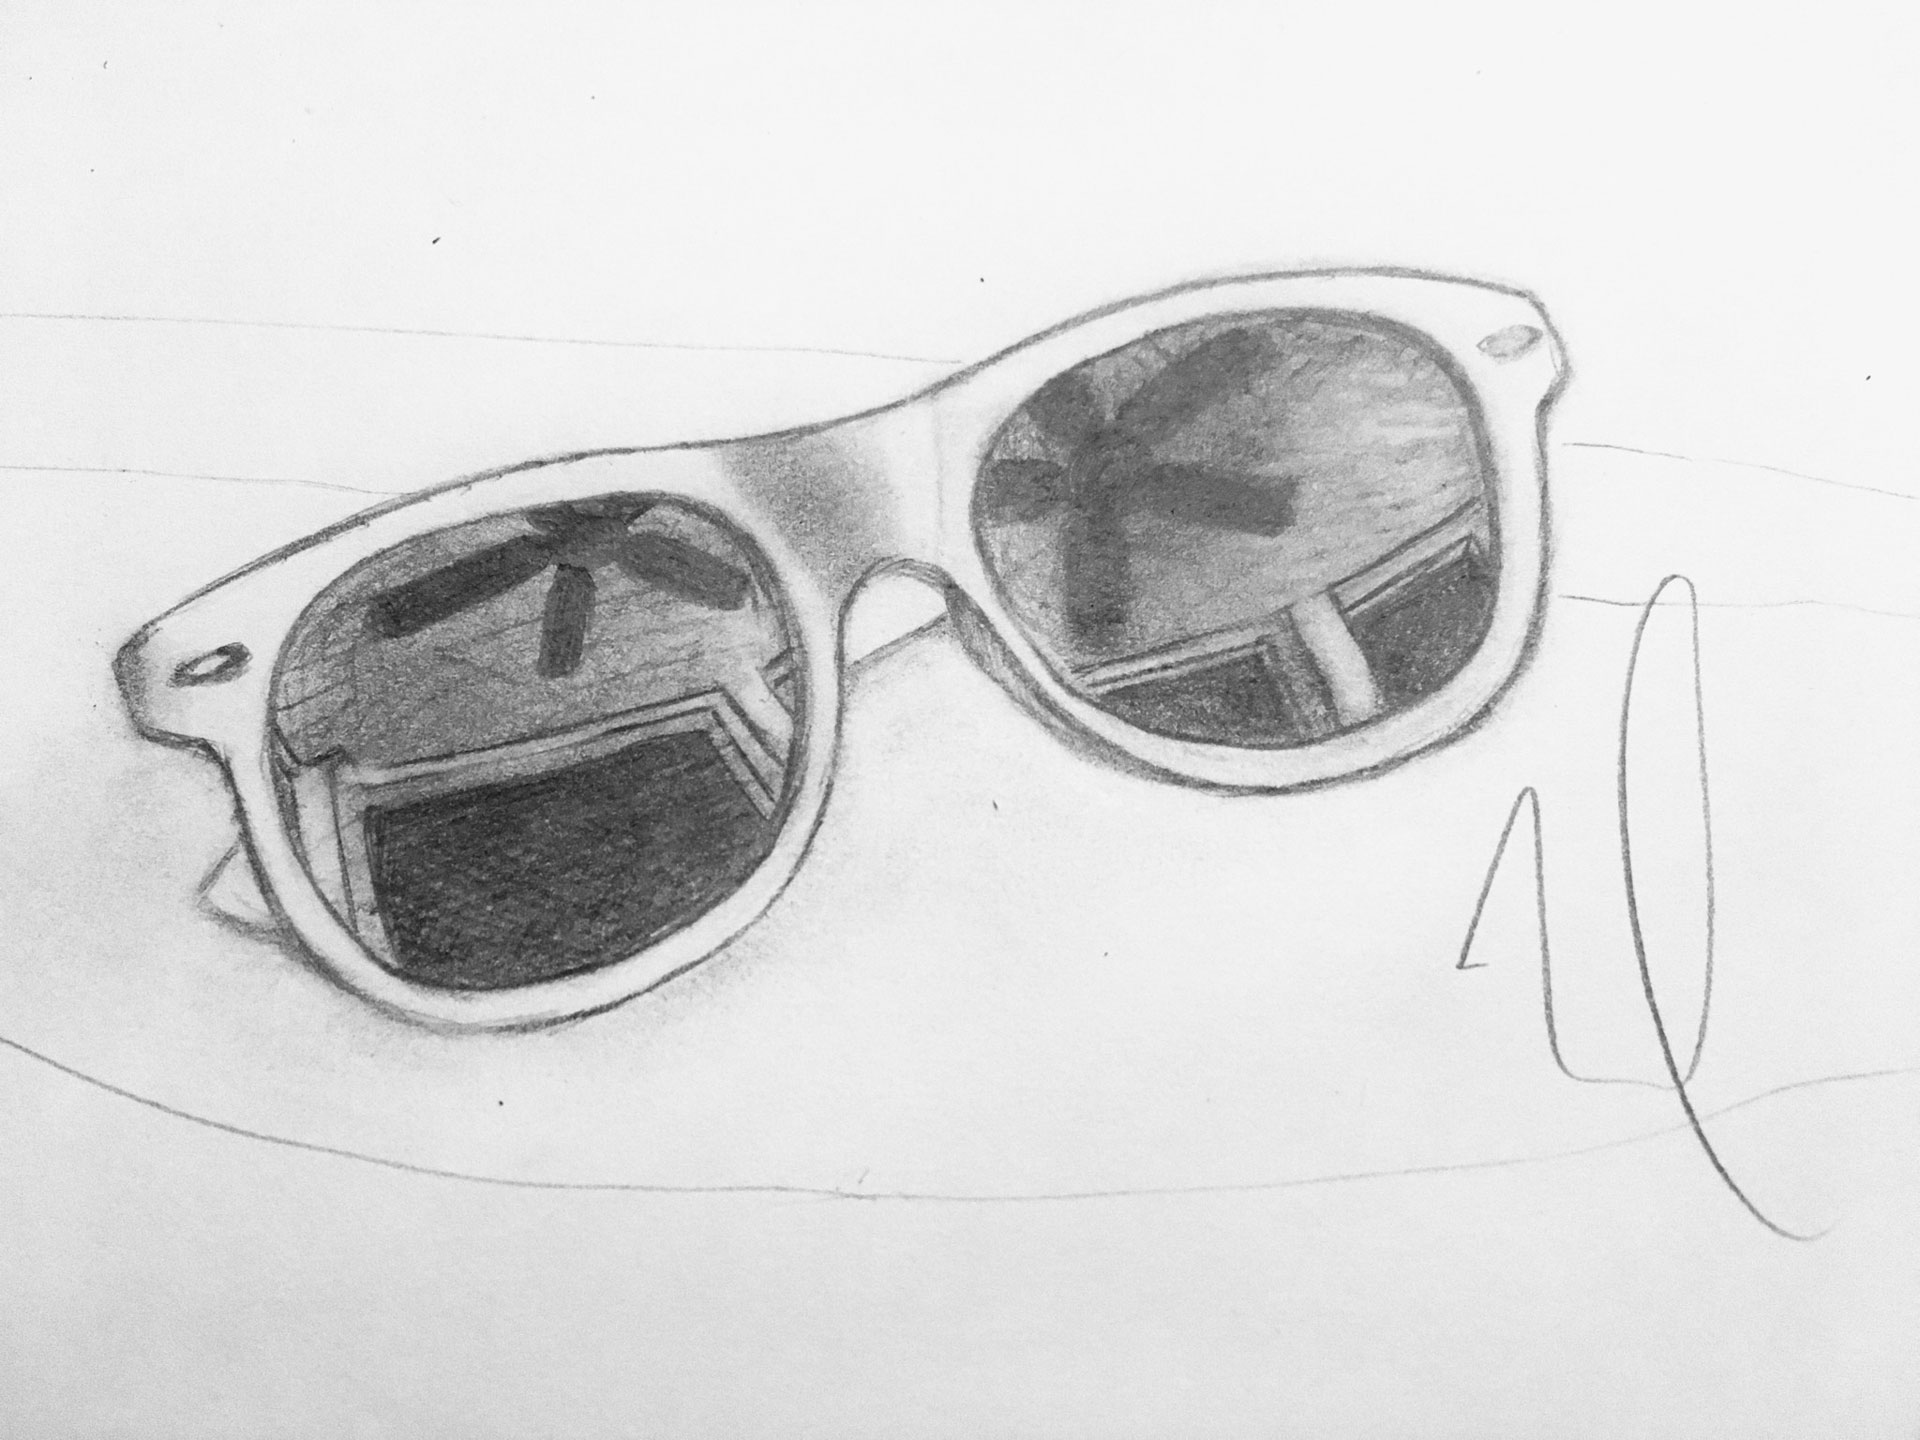 Pencil sketch of Rayban Wayfairers by Noah Watson